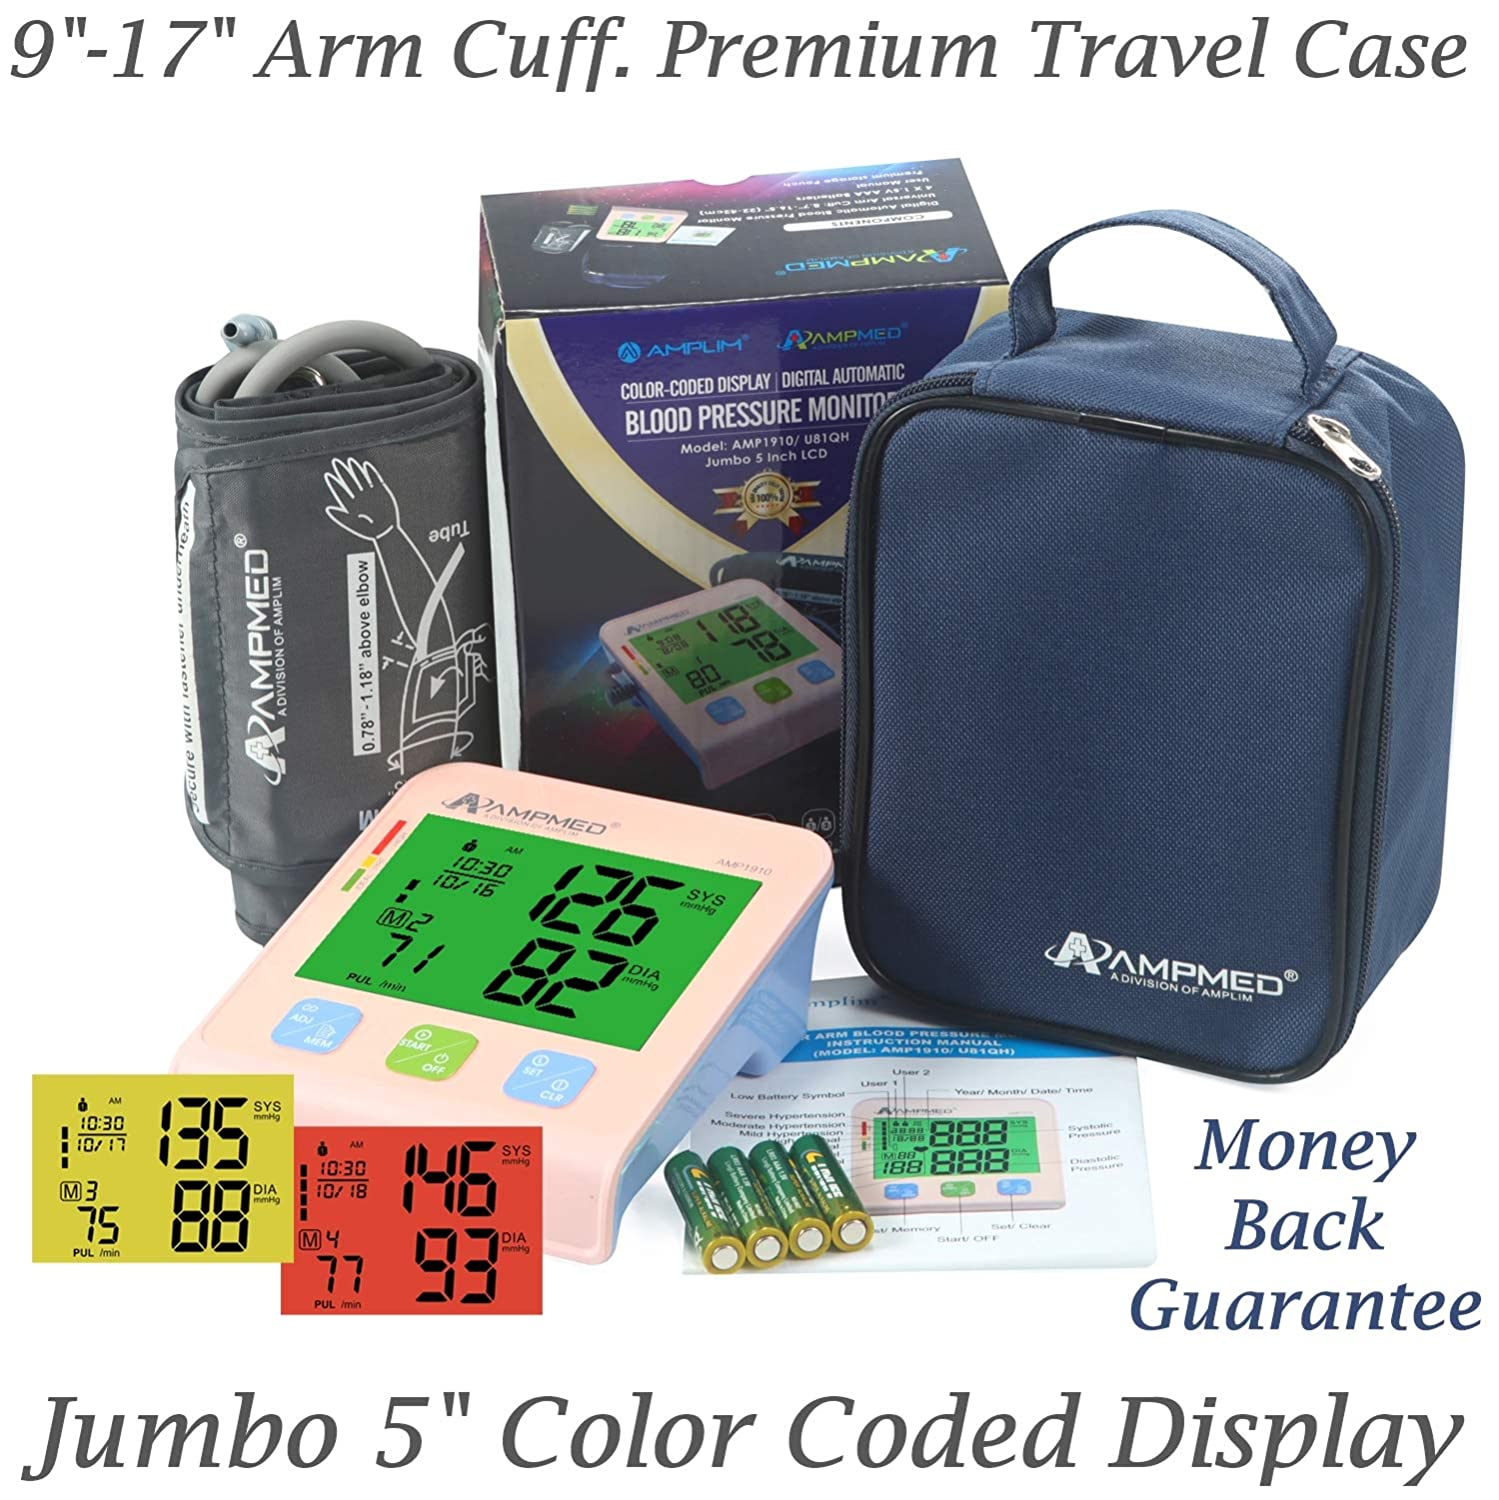 Fully Automatic Medical Grade Upper Arm Digital Blood Pressure Monitor with 9 -17 Small to X-Large Arm Cuff, Jumbo 5 Color Display, Large Memory and Premium Storage Pouch. Amplim 2-User BP Machine